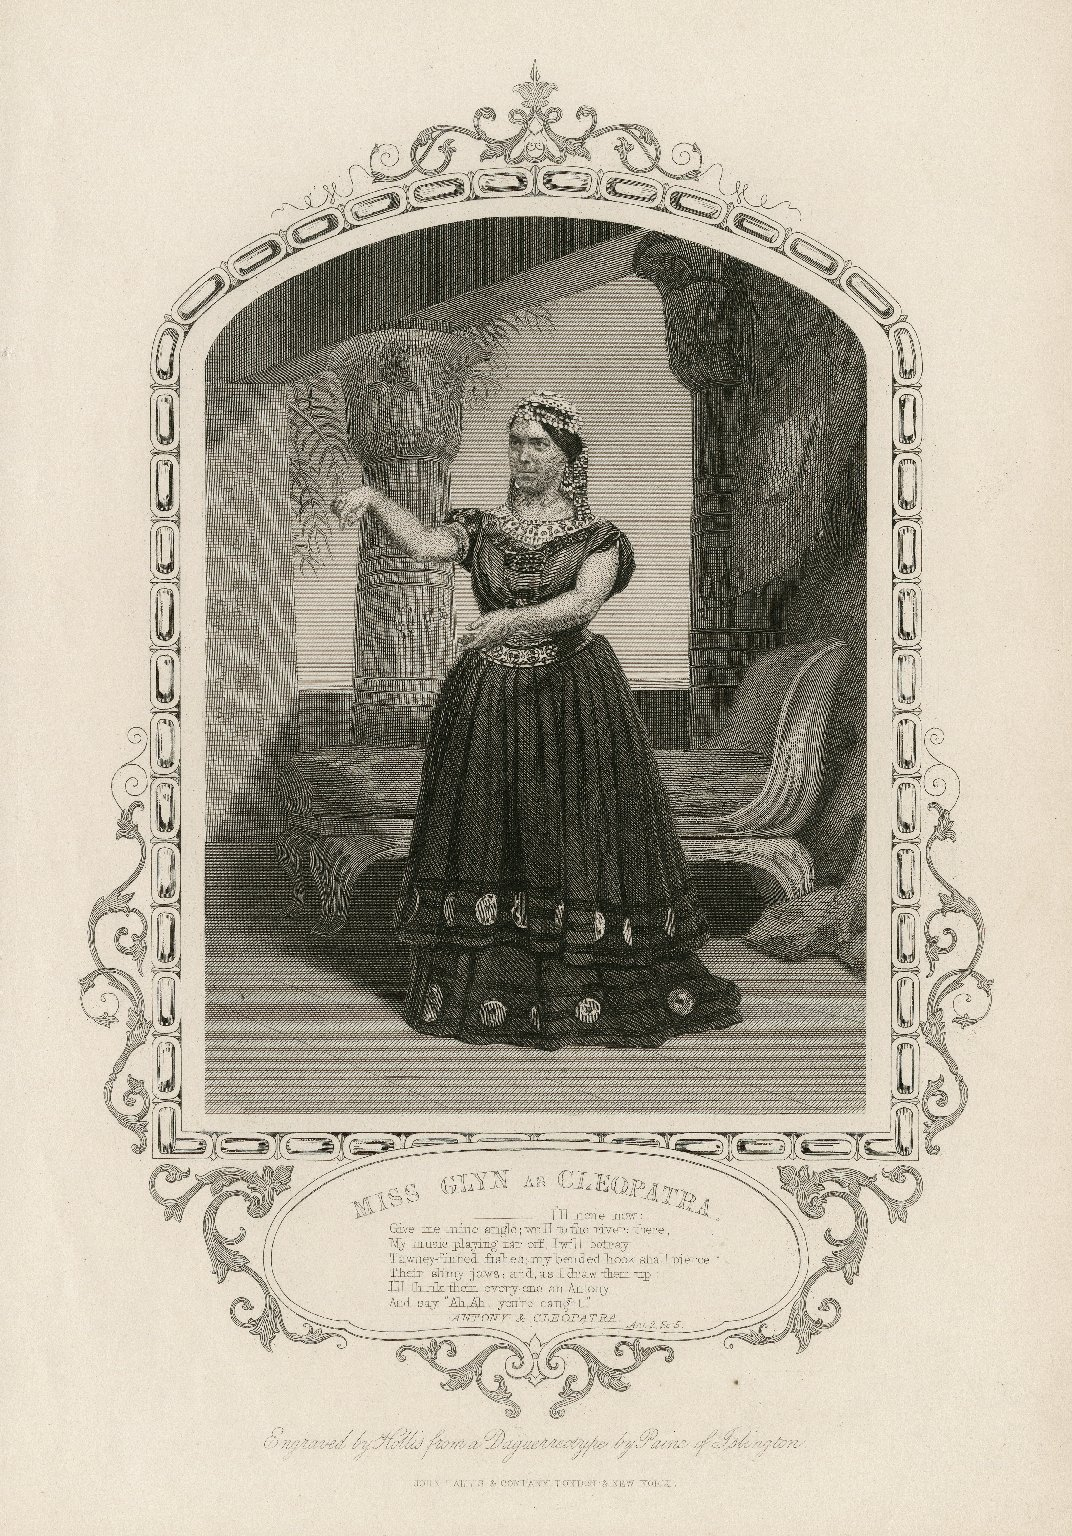 Miss Glyn as Cleopatra ... [in Shakespeare's Antony and Cleopatra] [graphic] / engraved by Hollis from a daguerreotype by Paine of Islington.